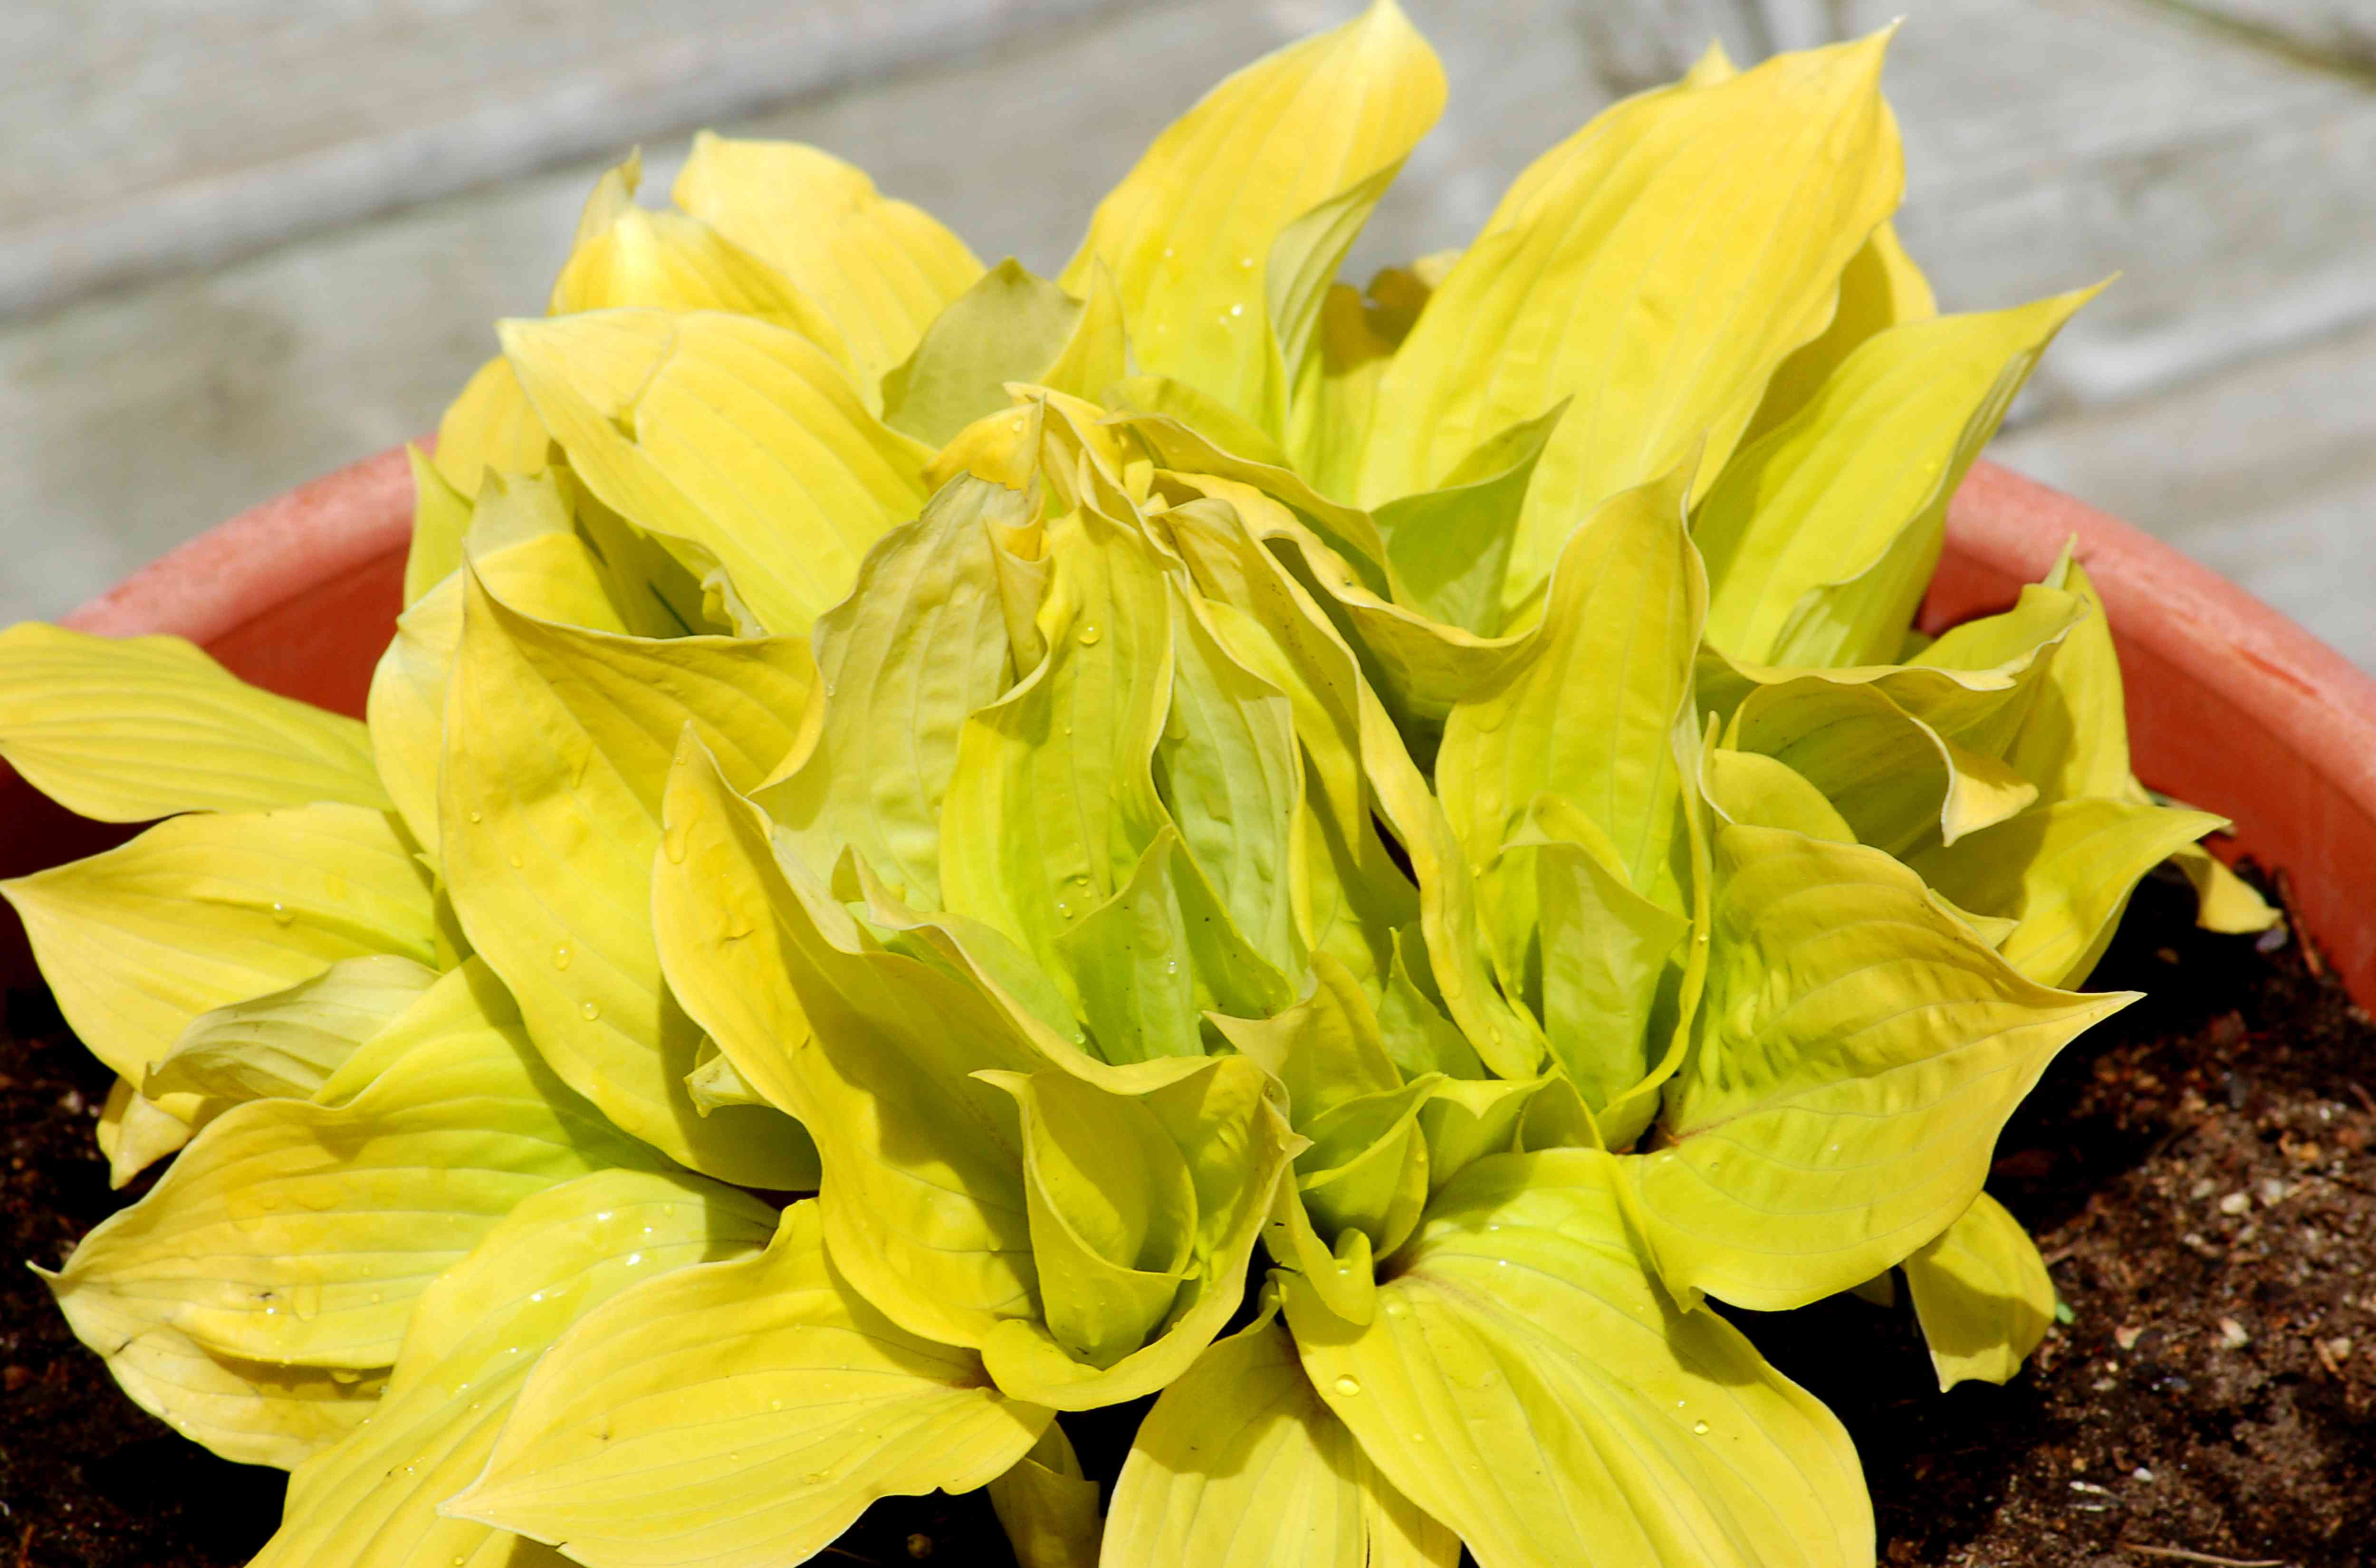 Fire Island hosta with golden leaves.